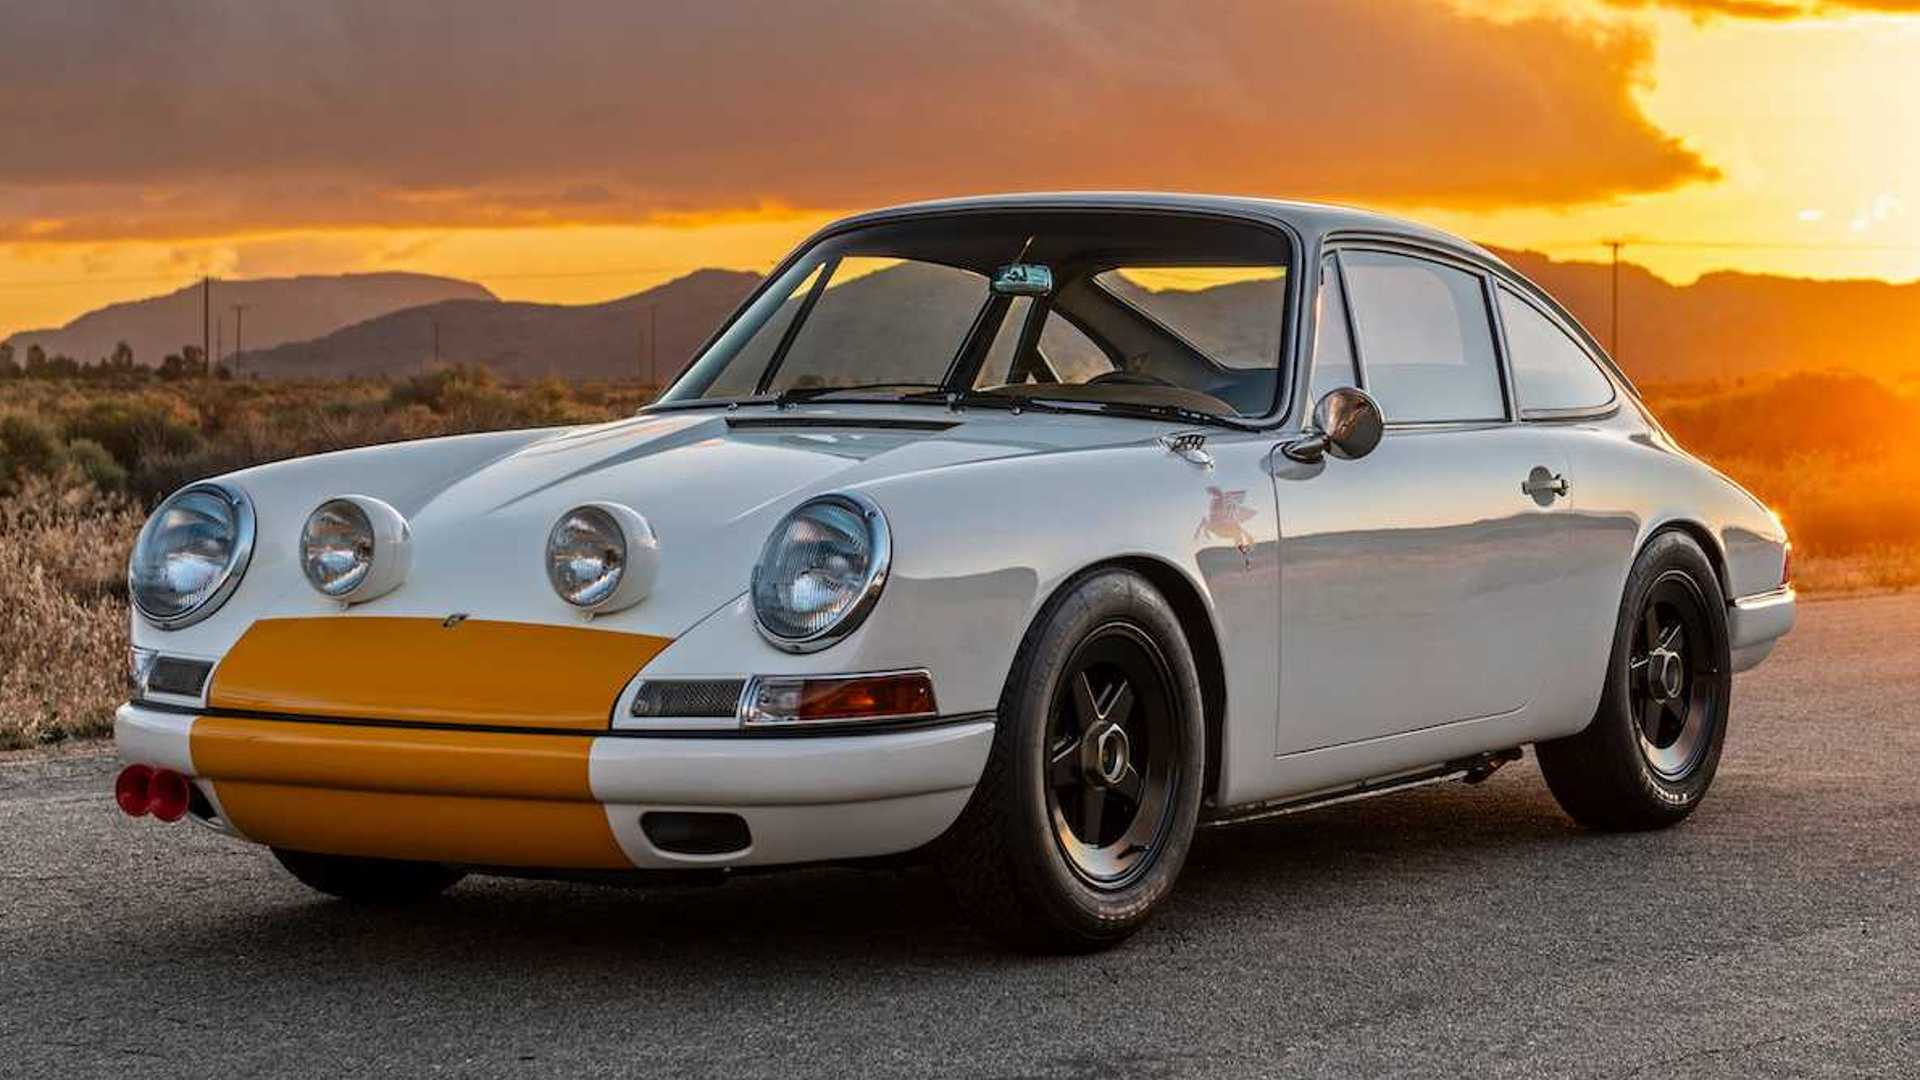 1968 Porsche 911K Outlaw from Emory is restomodding done right